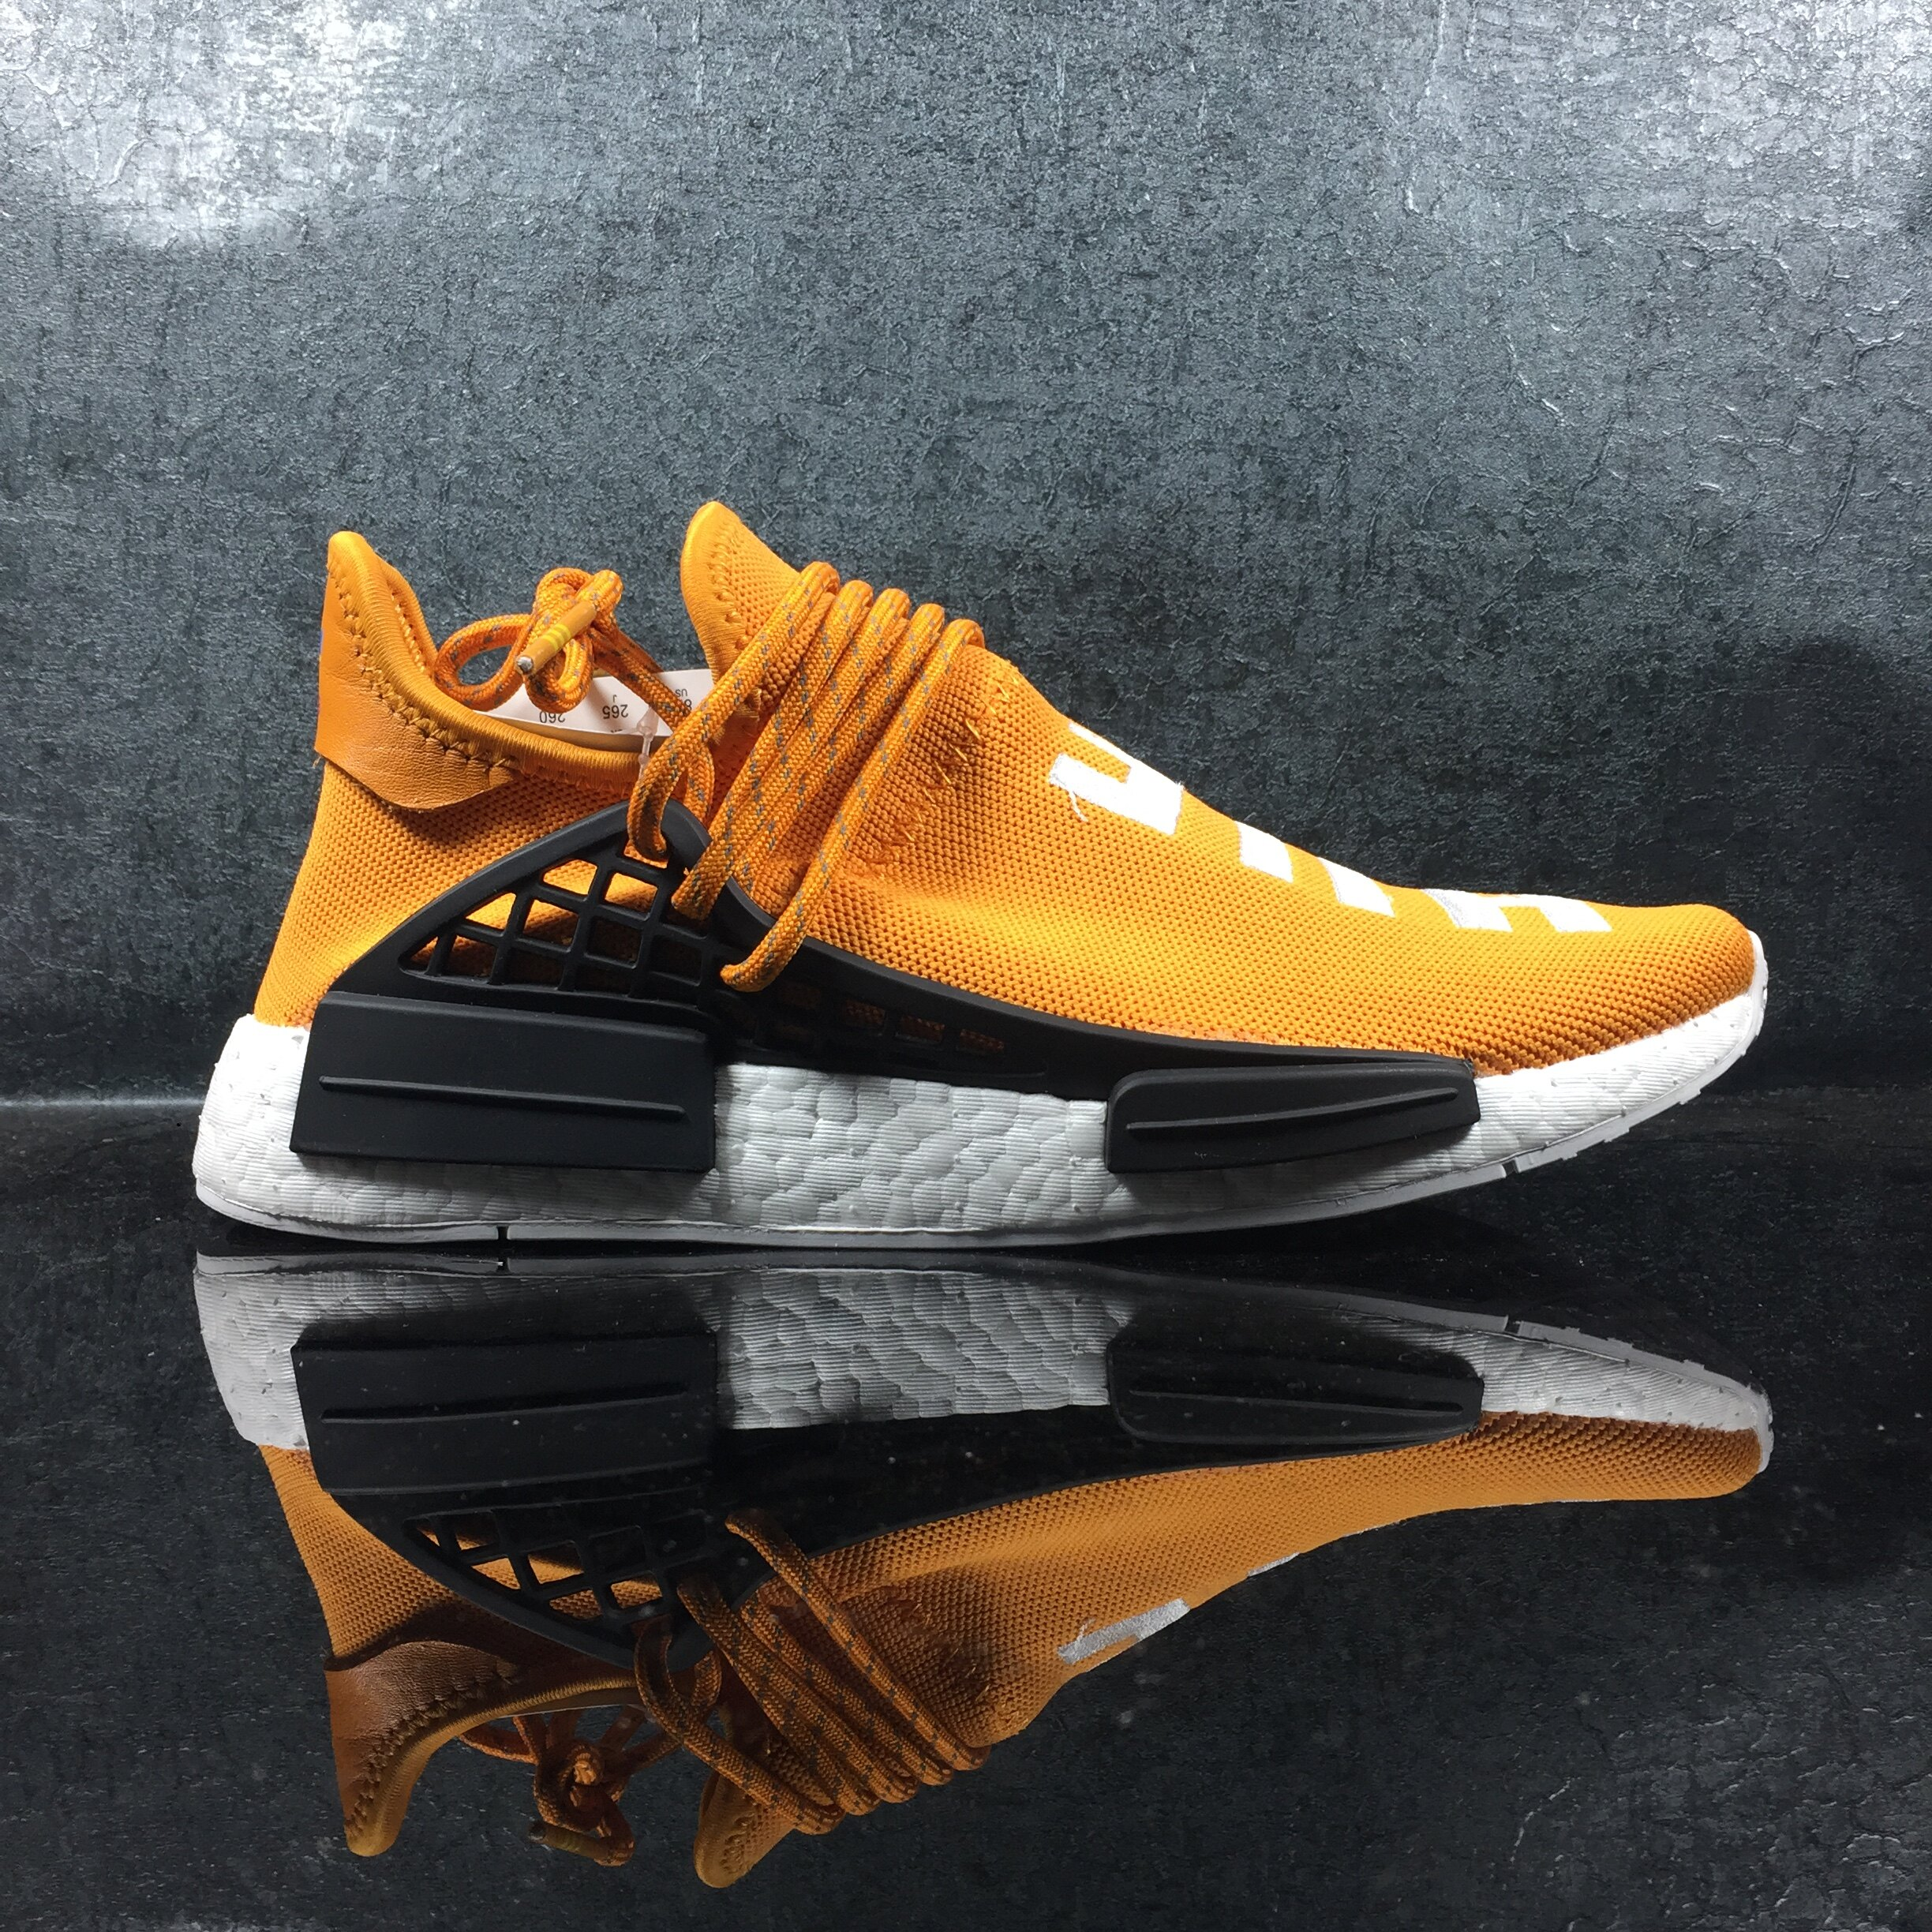 best authentic 77740 42267 ADIDAS X PHARRELL NMD HUMAN RACE TANGERINE ORANGE PW BB3070 WITH ORIGINAL  BOOST